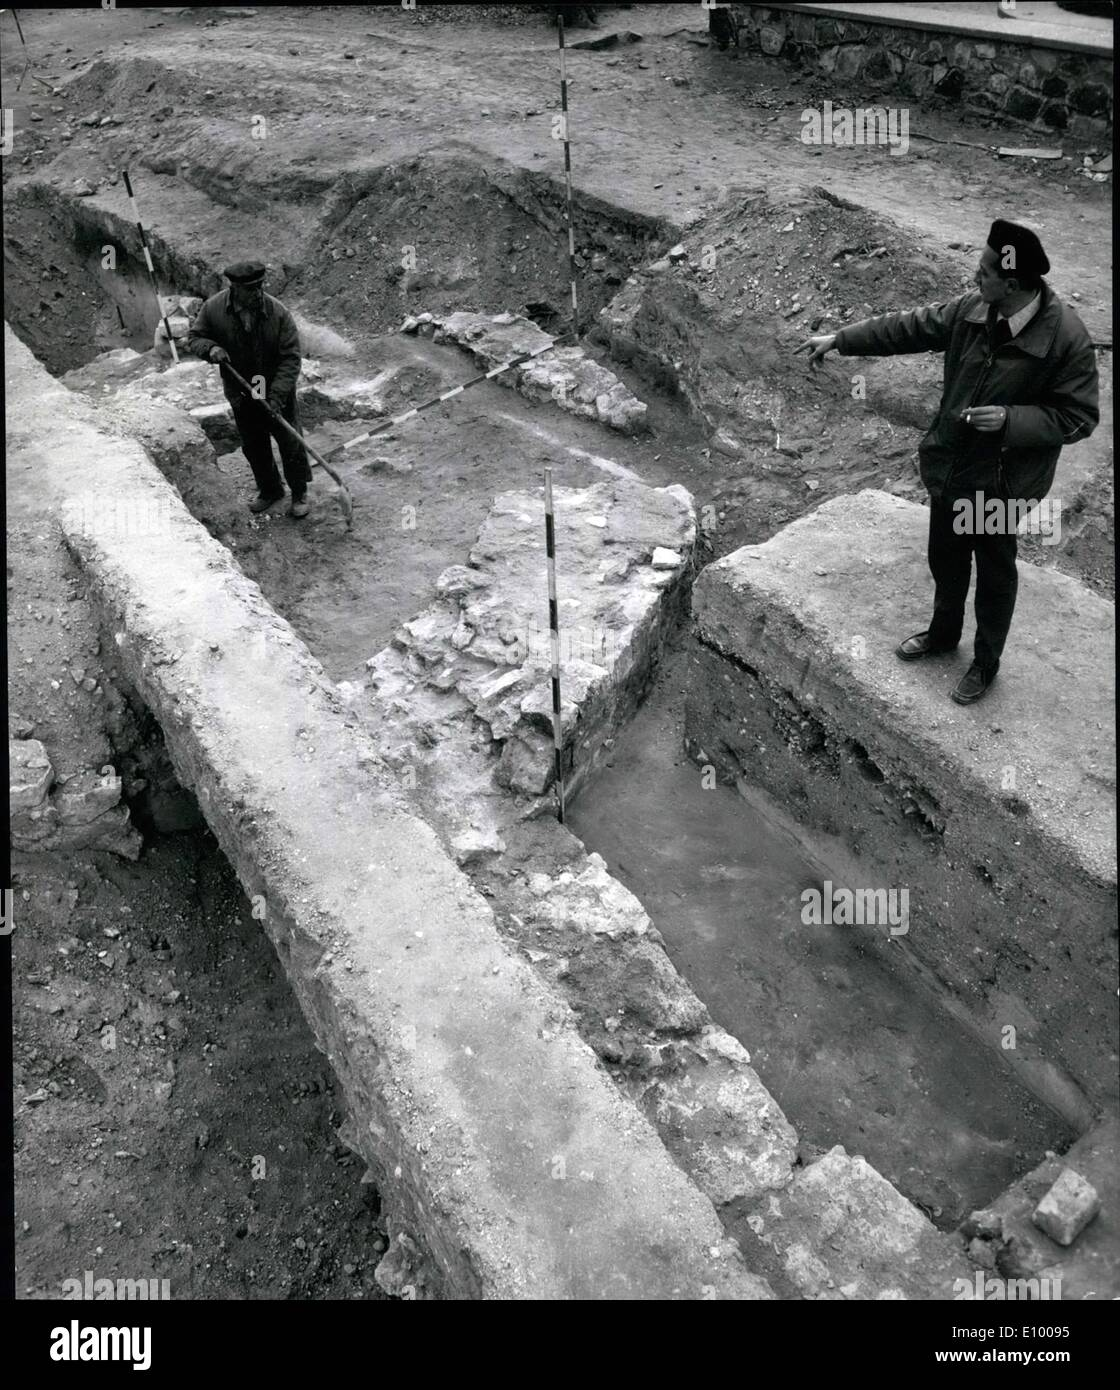 Jan. 01, 1972 - TOMB OF HUNGARIAN NATION'S FIRST RULER BELIEVED FOUND IN WESTERN HUNGRY. Archeologists excavating Stock Photo